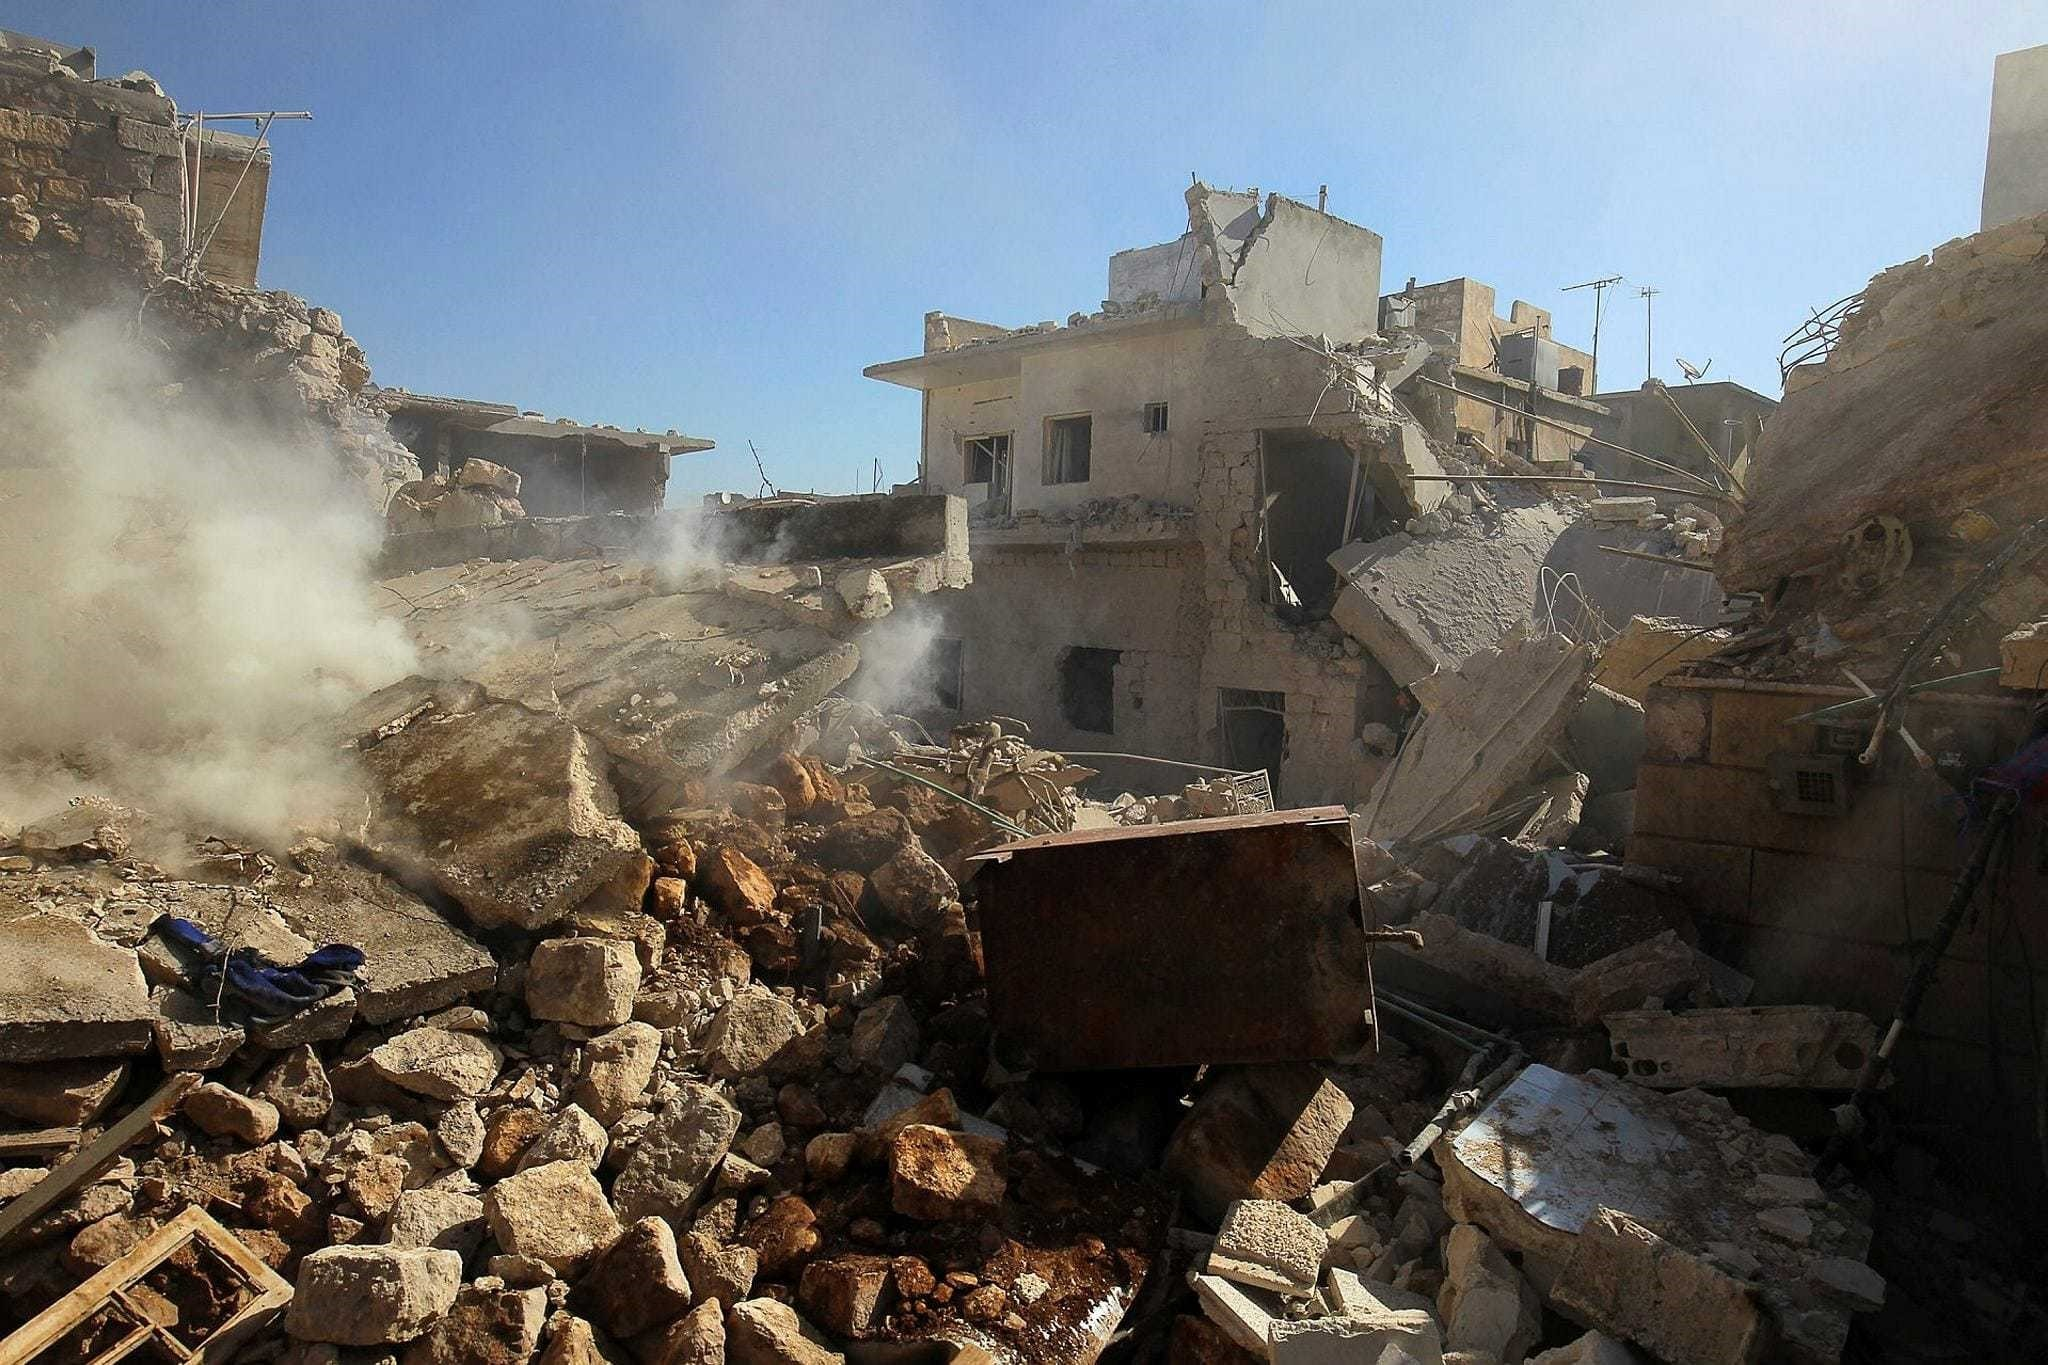 Smoke rises from damaged buildings after an airstrike on the opposition-held town of Darat Izza, province of Aleppo, Syria, Nov. 5.